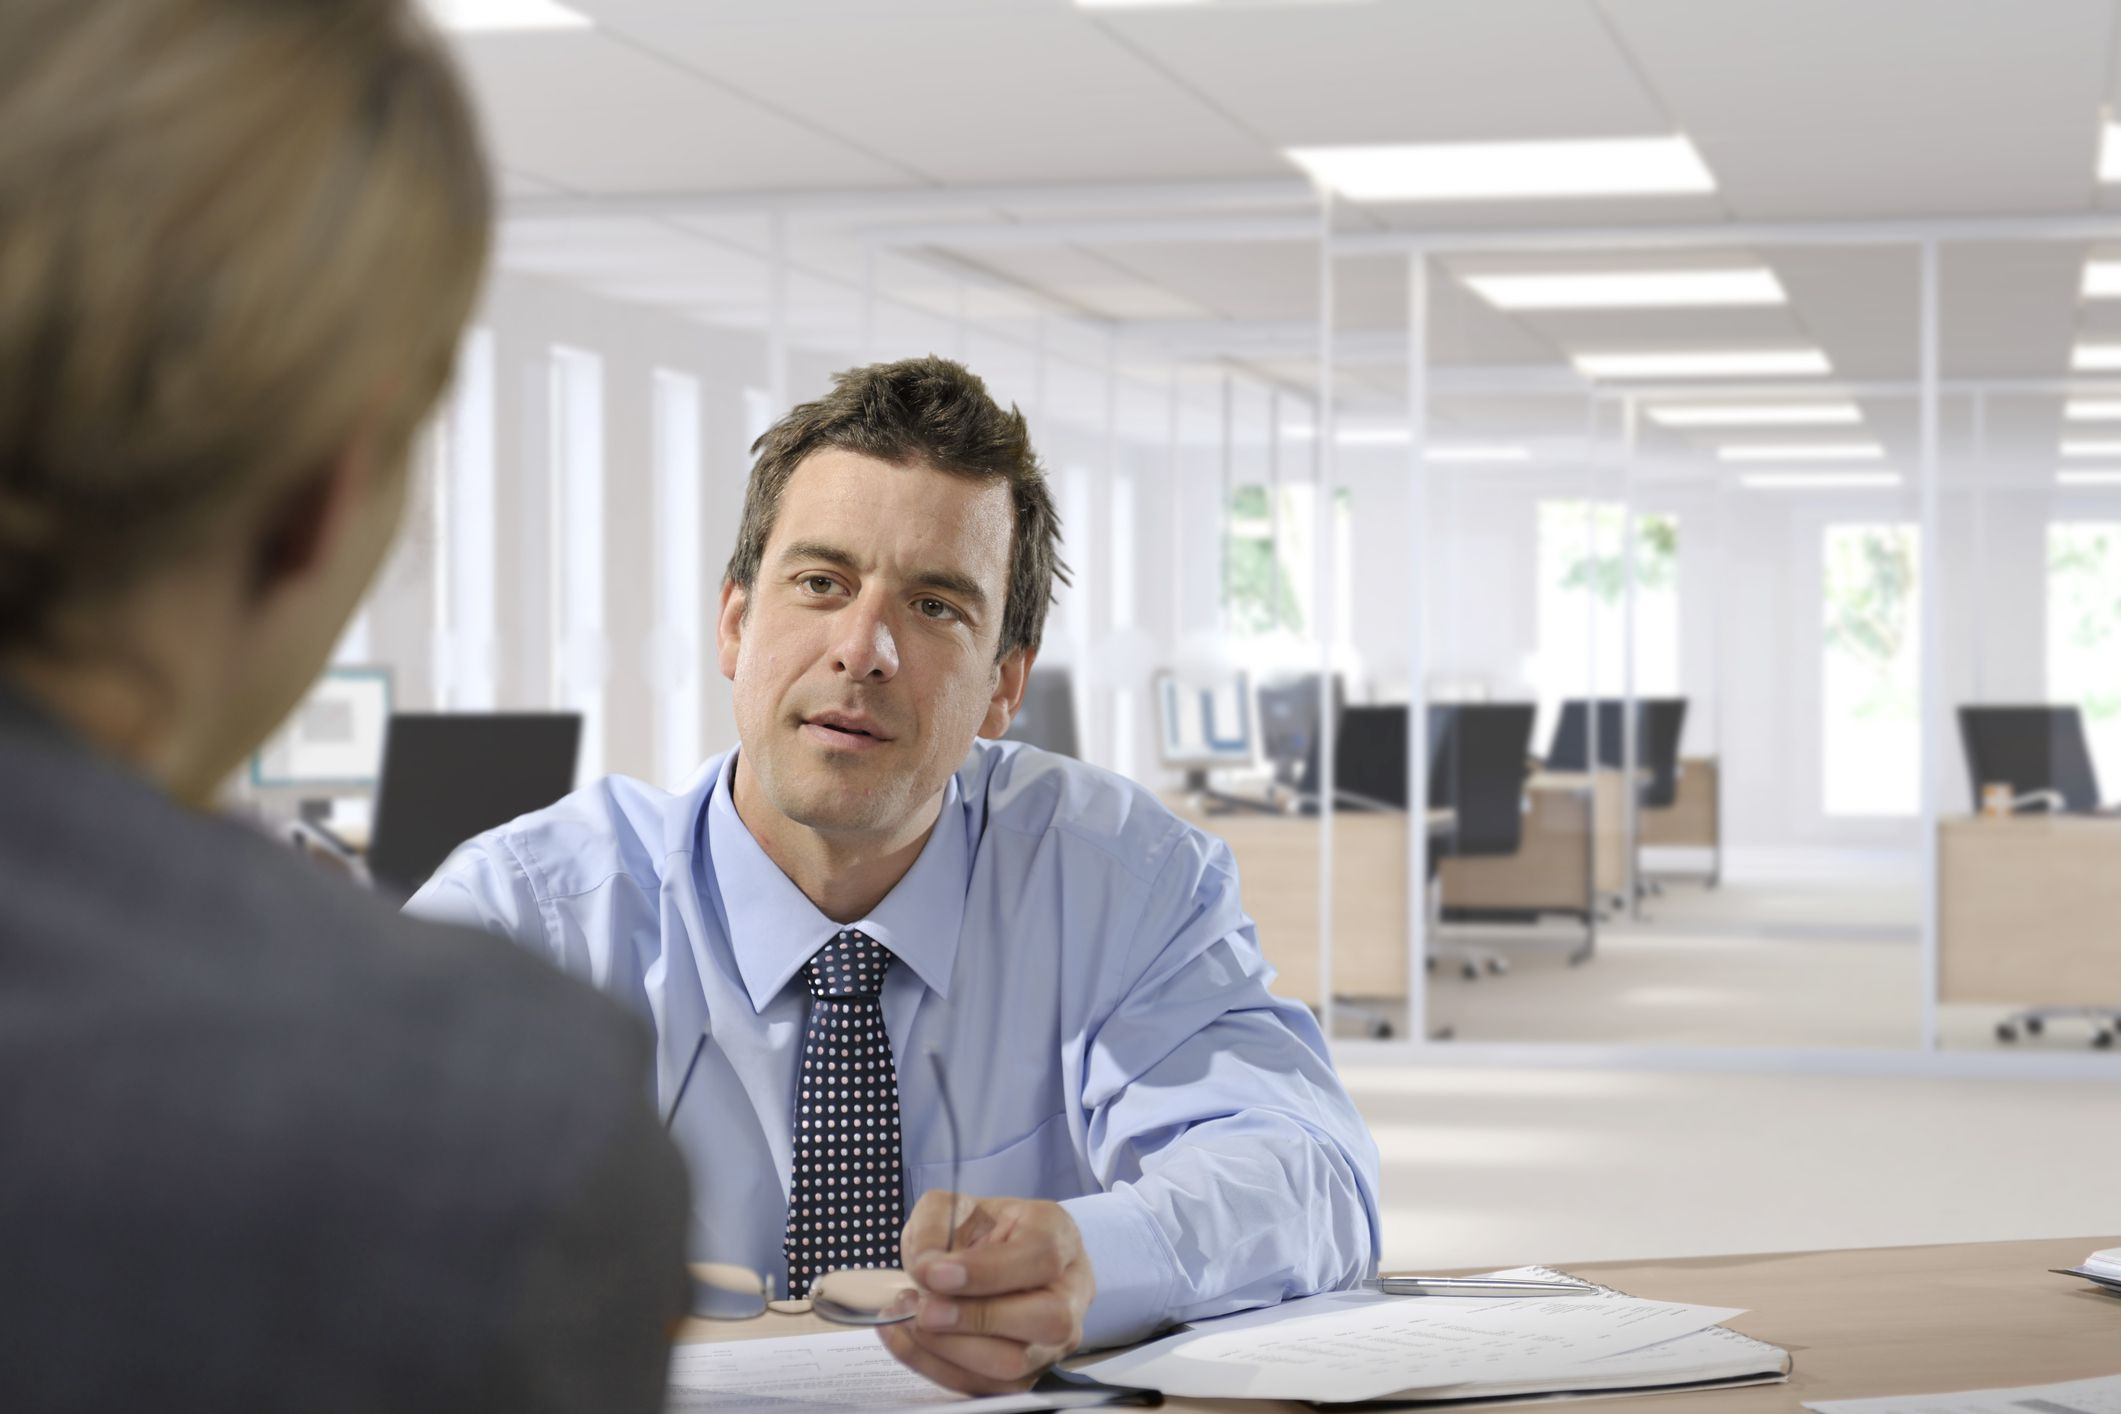 best answers for job interview questions about teamwork man at job interview - Teamwork Interview Questions And Answers